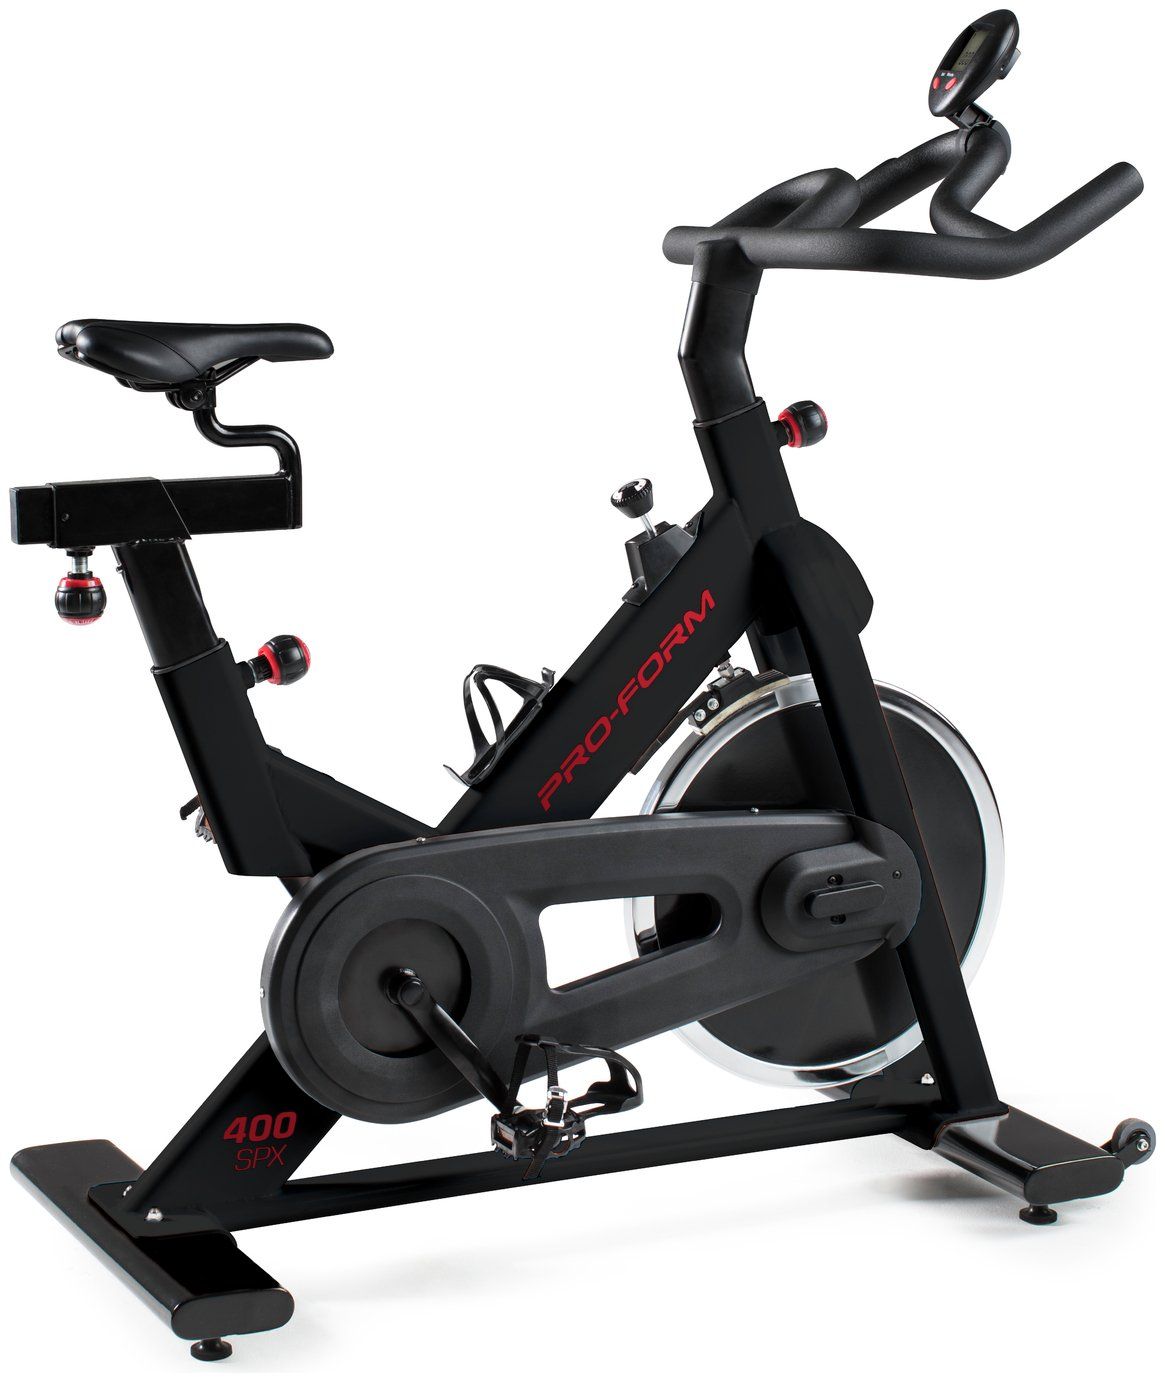 ProForm 400 SPX Indoor Trainer Exercise Bike